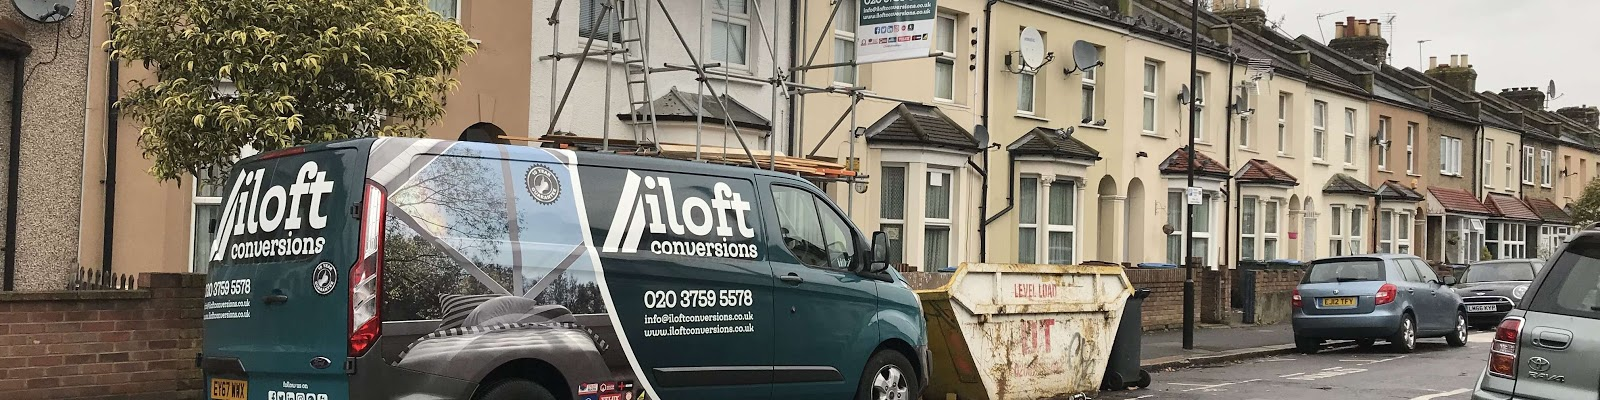 the iloft conversion van standing outside of a loft conversion in progress